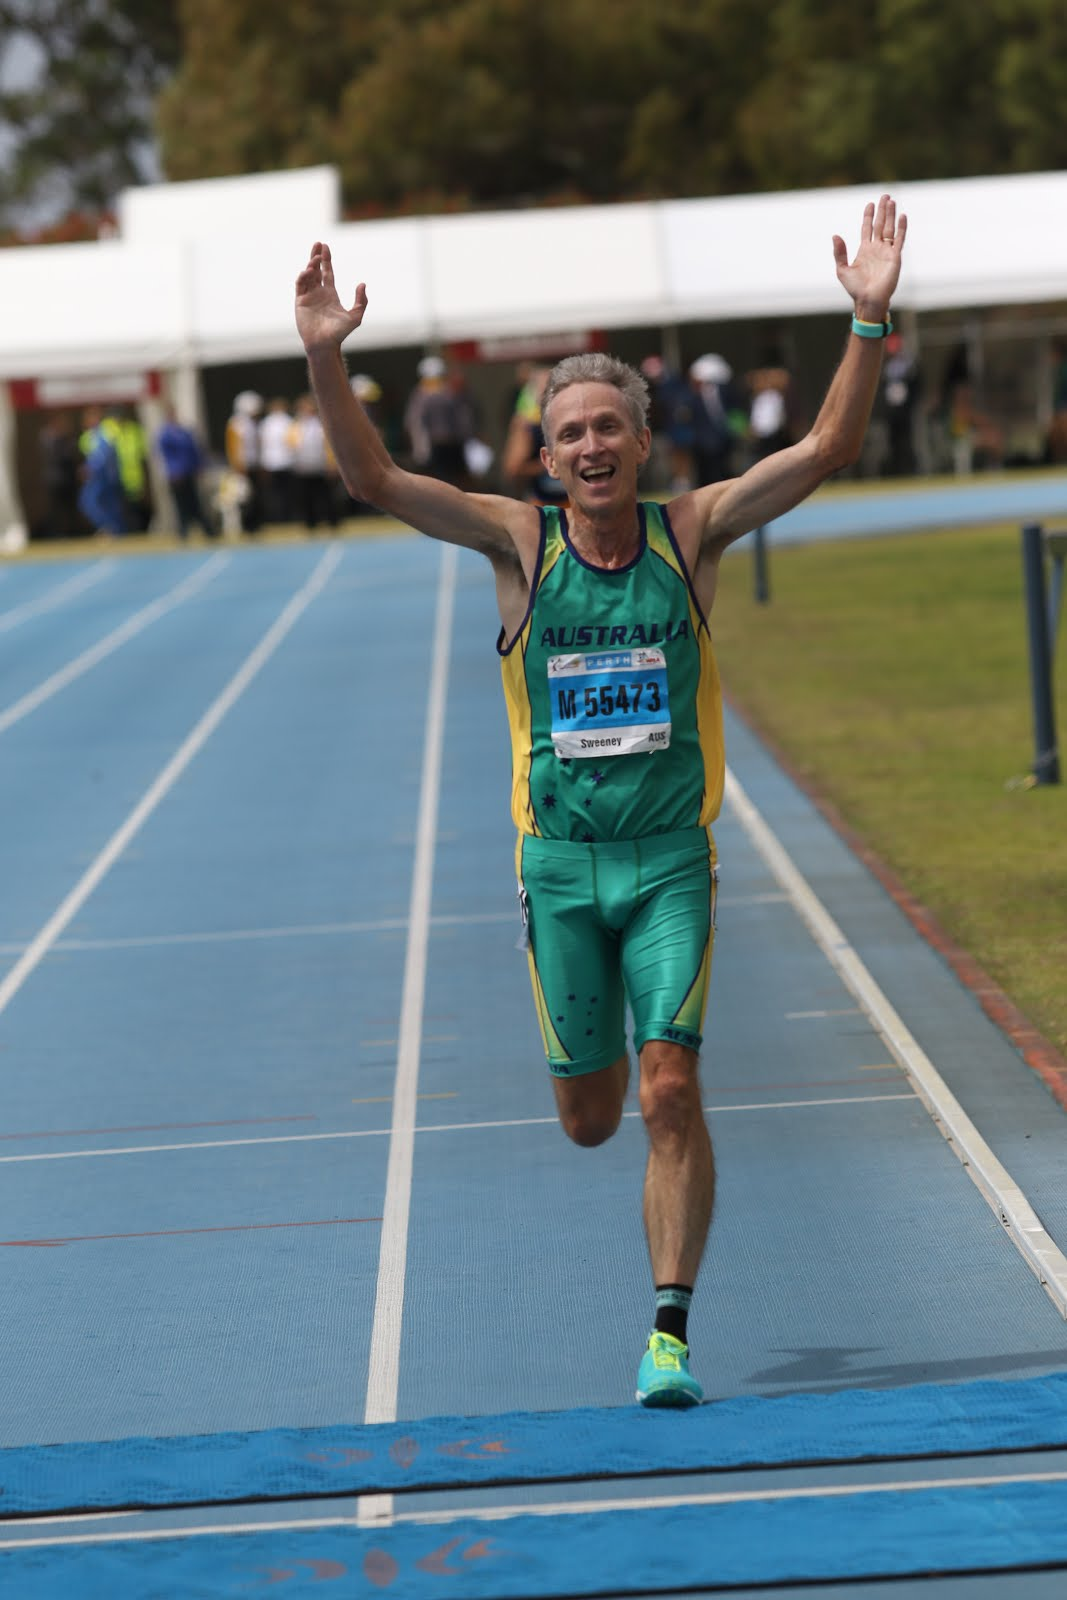 World Masters 5000m Champion 2016